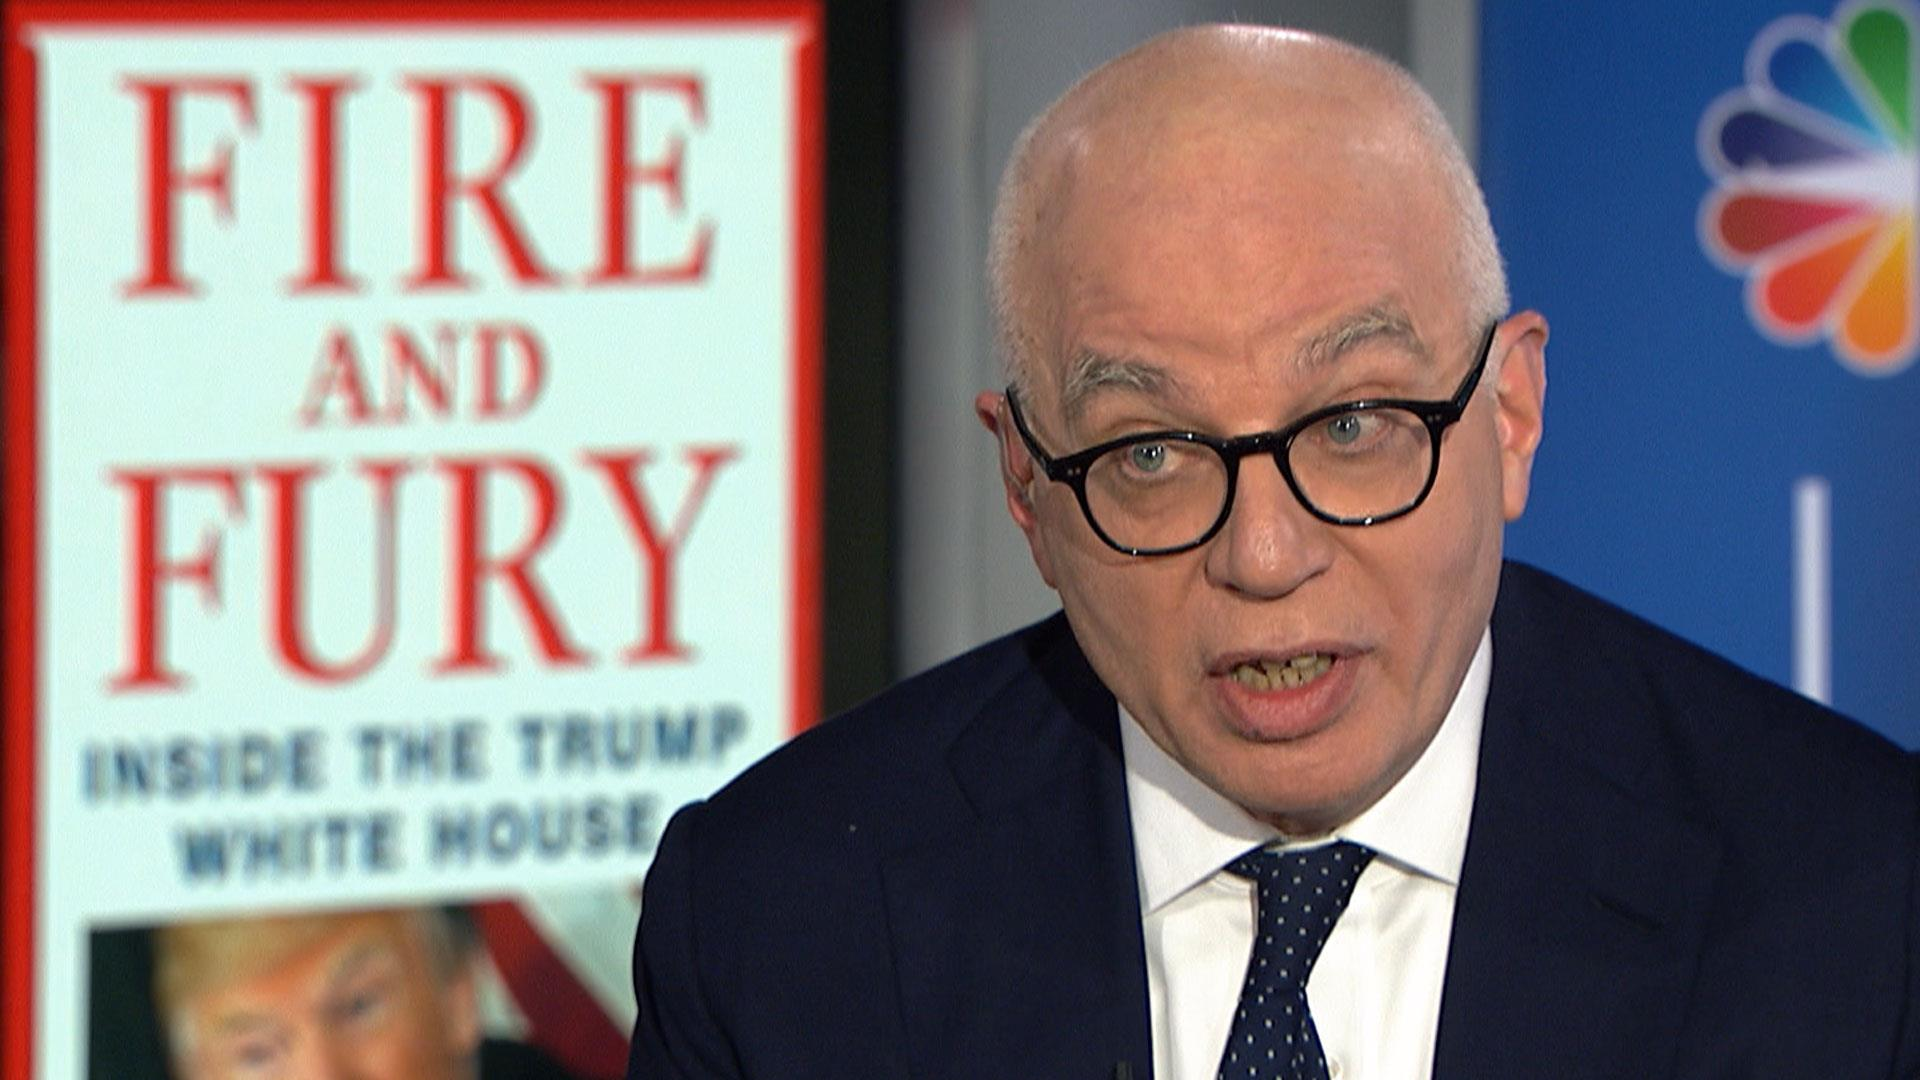 Michael Wolff says he will not release Trump tape interviews